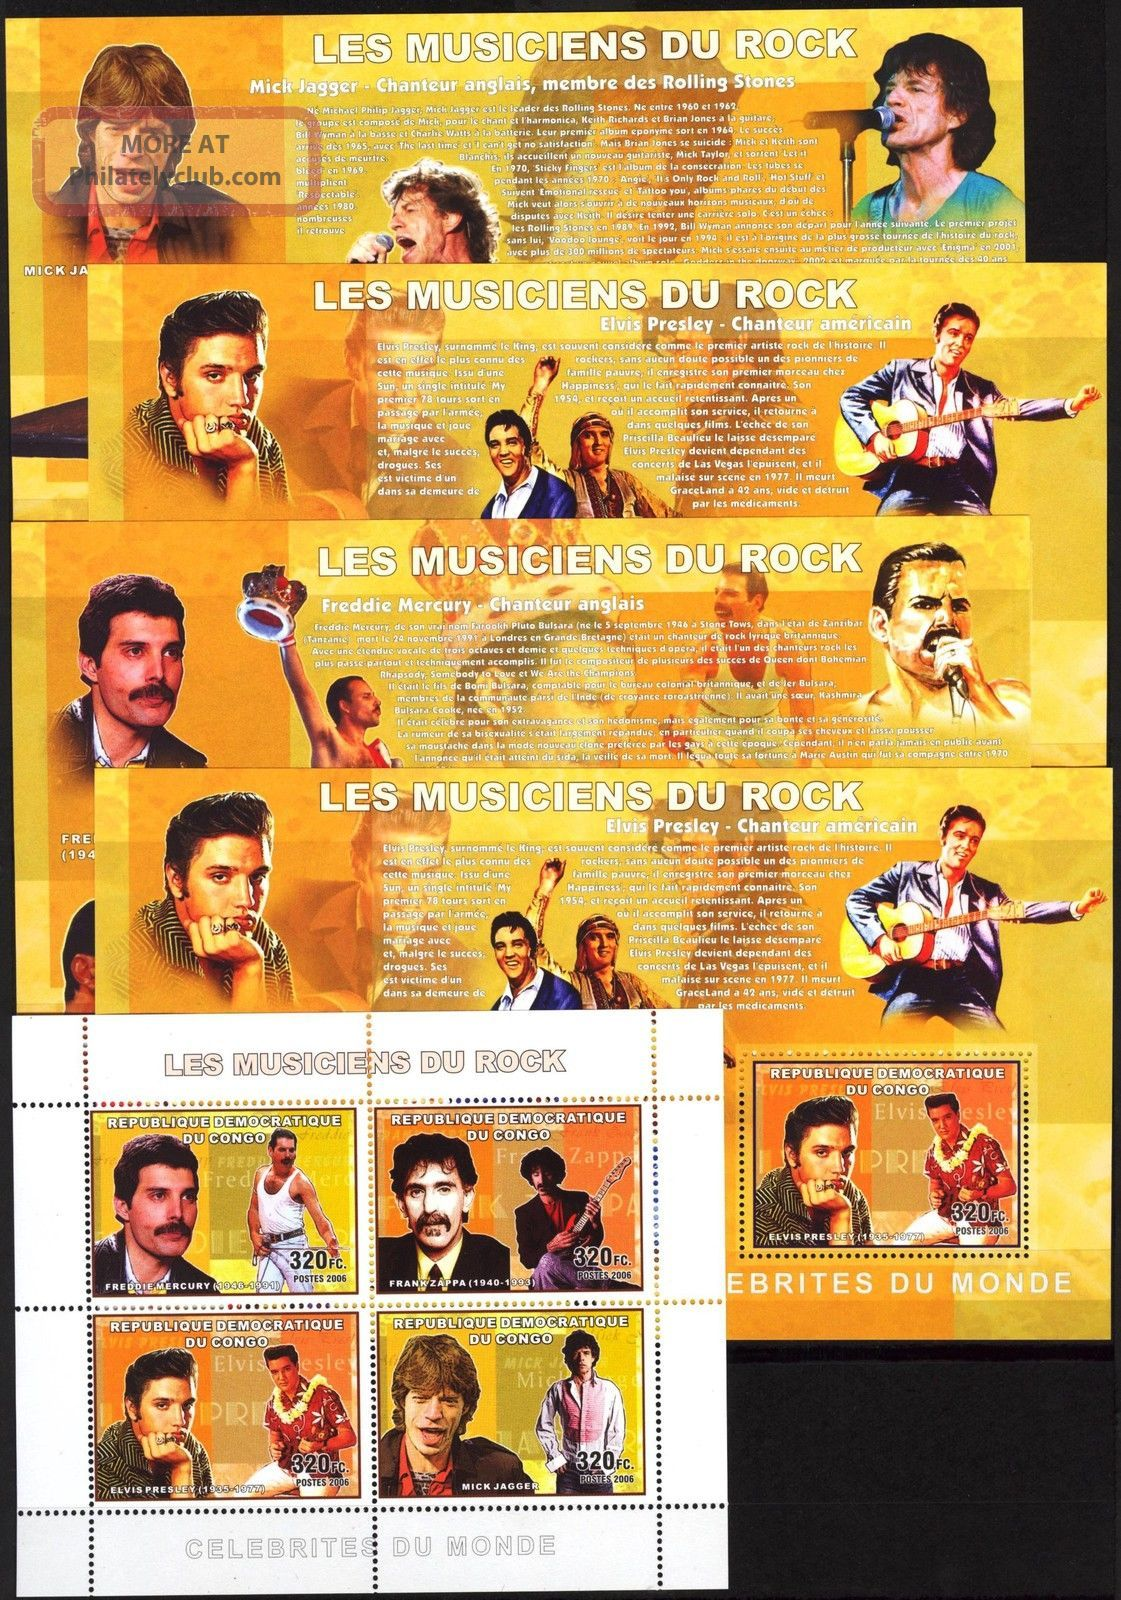 Congo 2006 Music Rock E.  Presley M.  Jager F.  Mercury Queen Zappa 5 S/s Topical Stamps photo